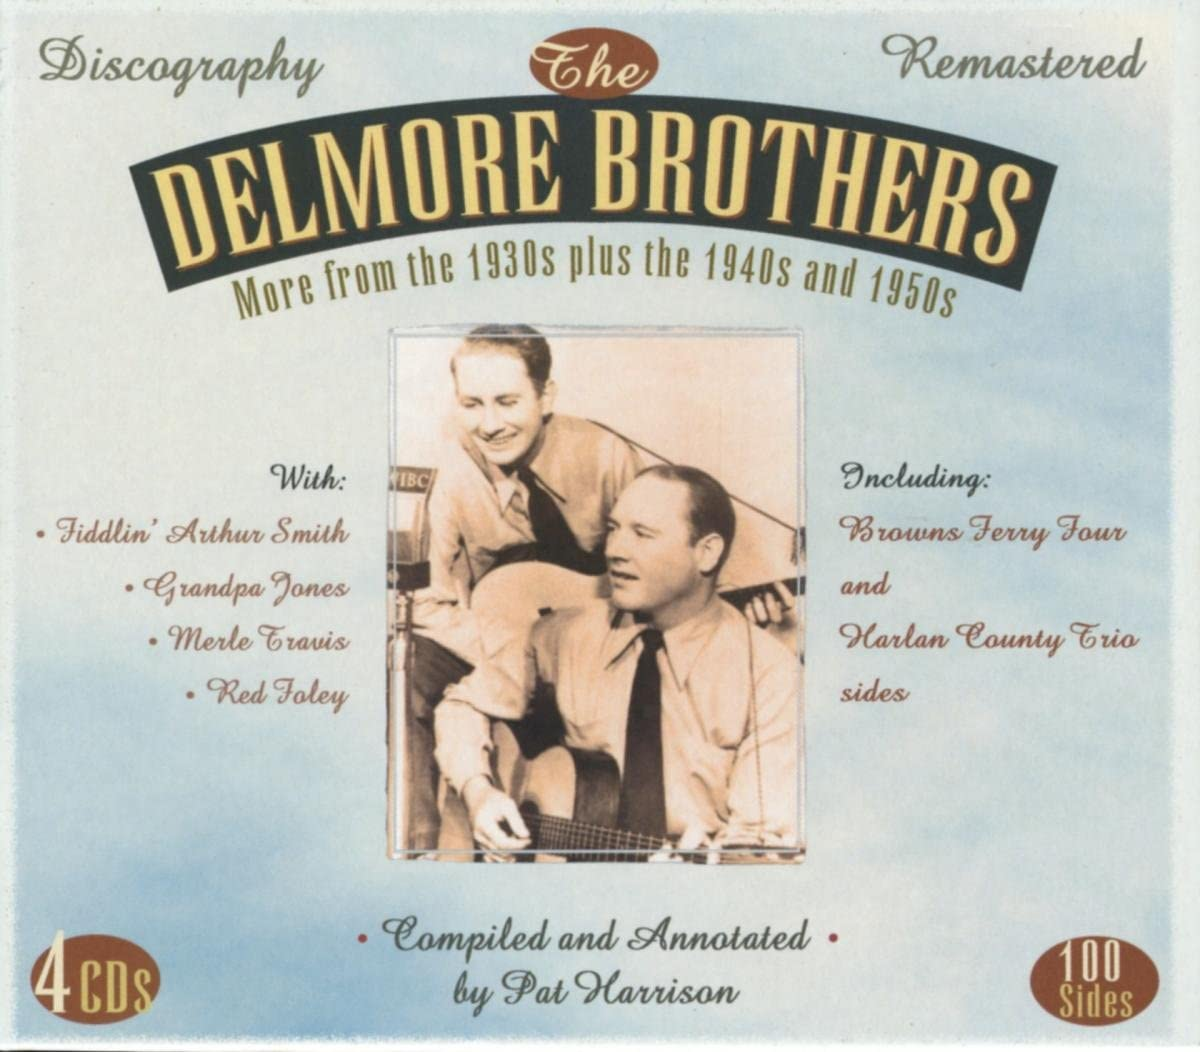 Delmore Brothers/More From the 30s, 40s & 50s (4 CD Box) [CD]